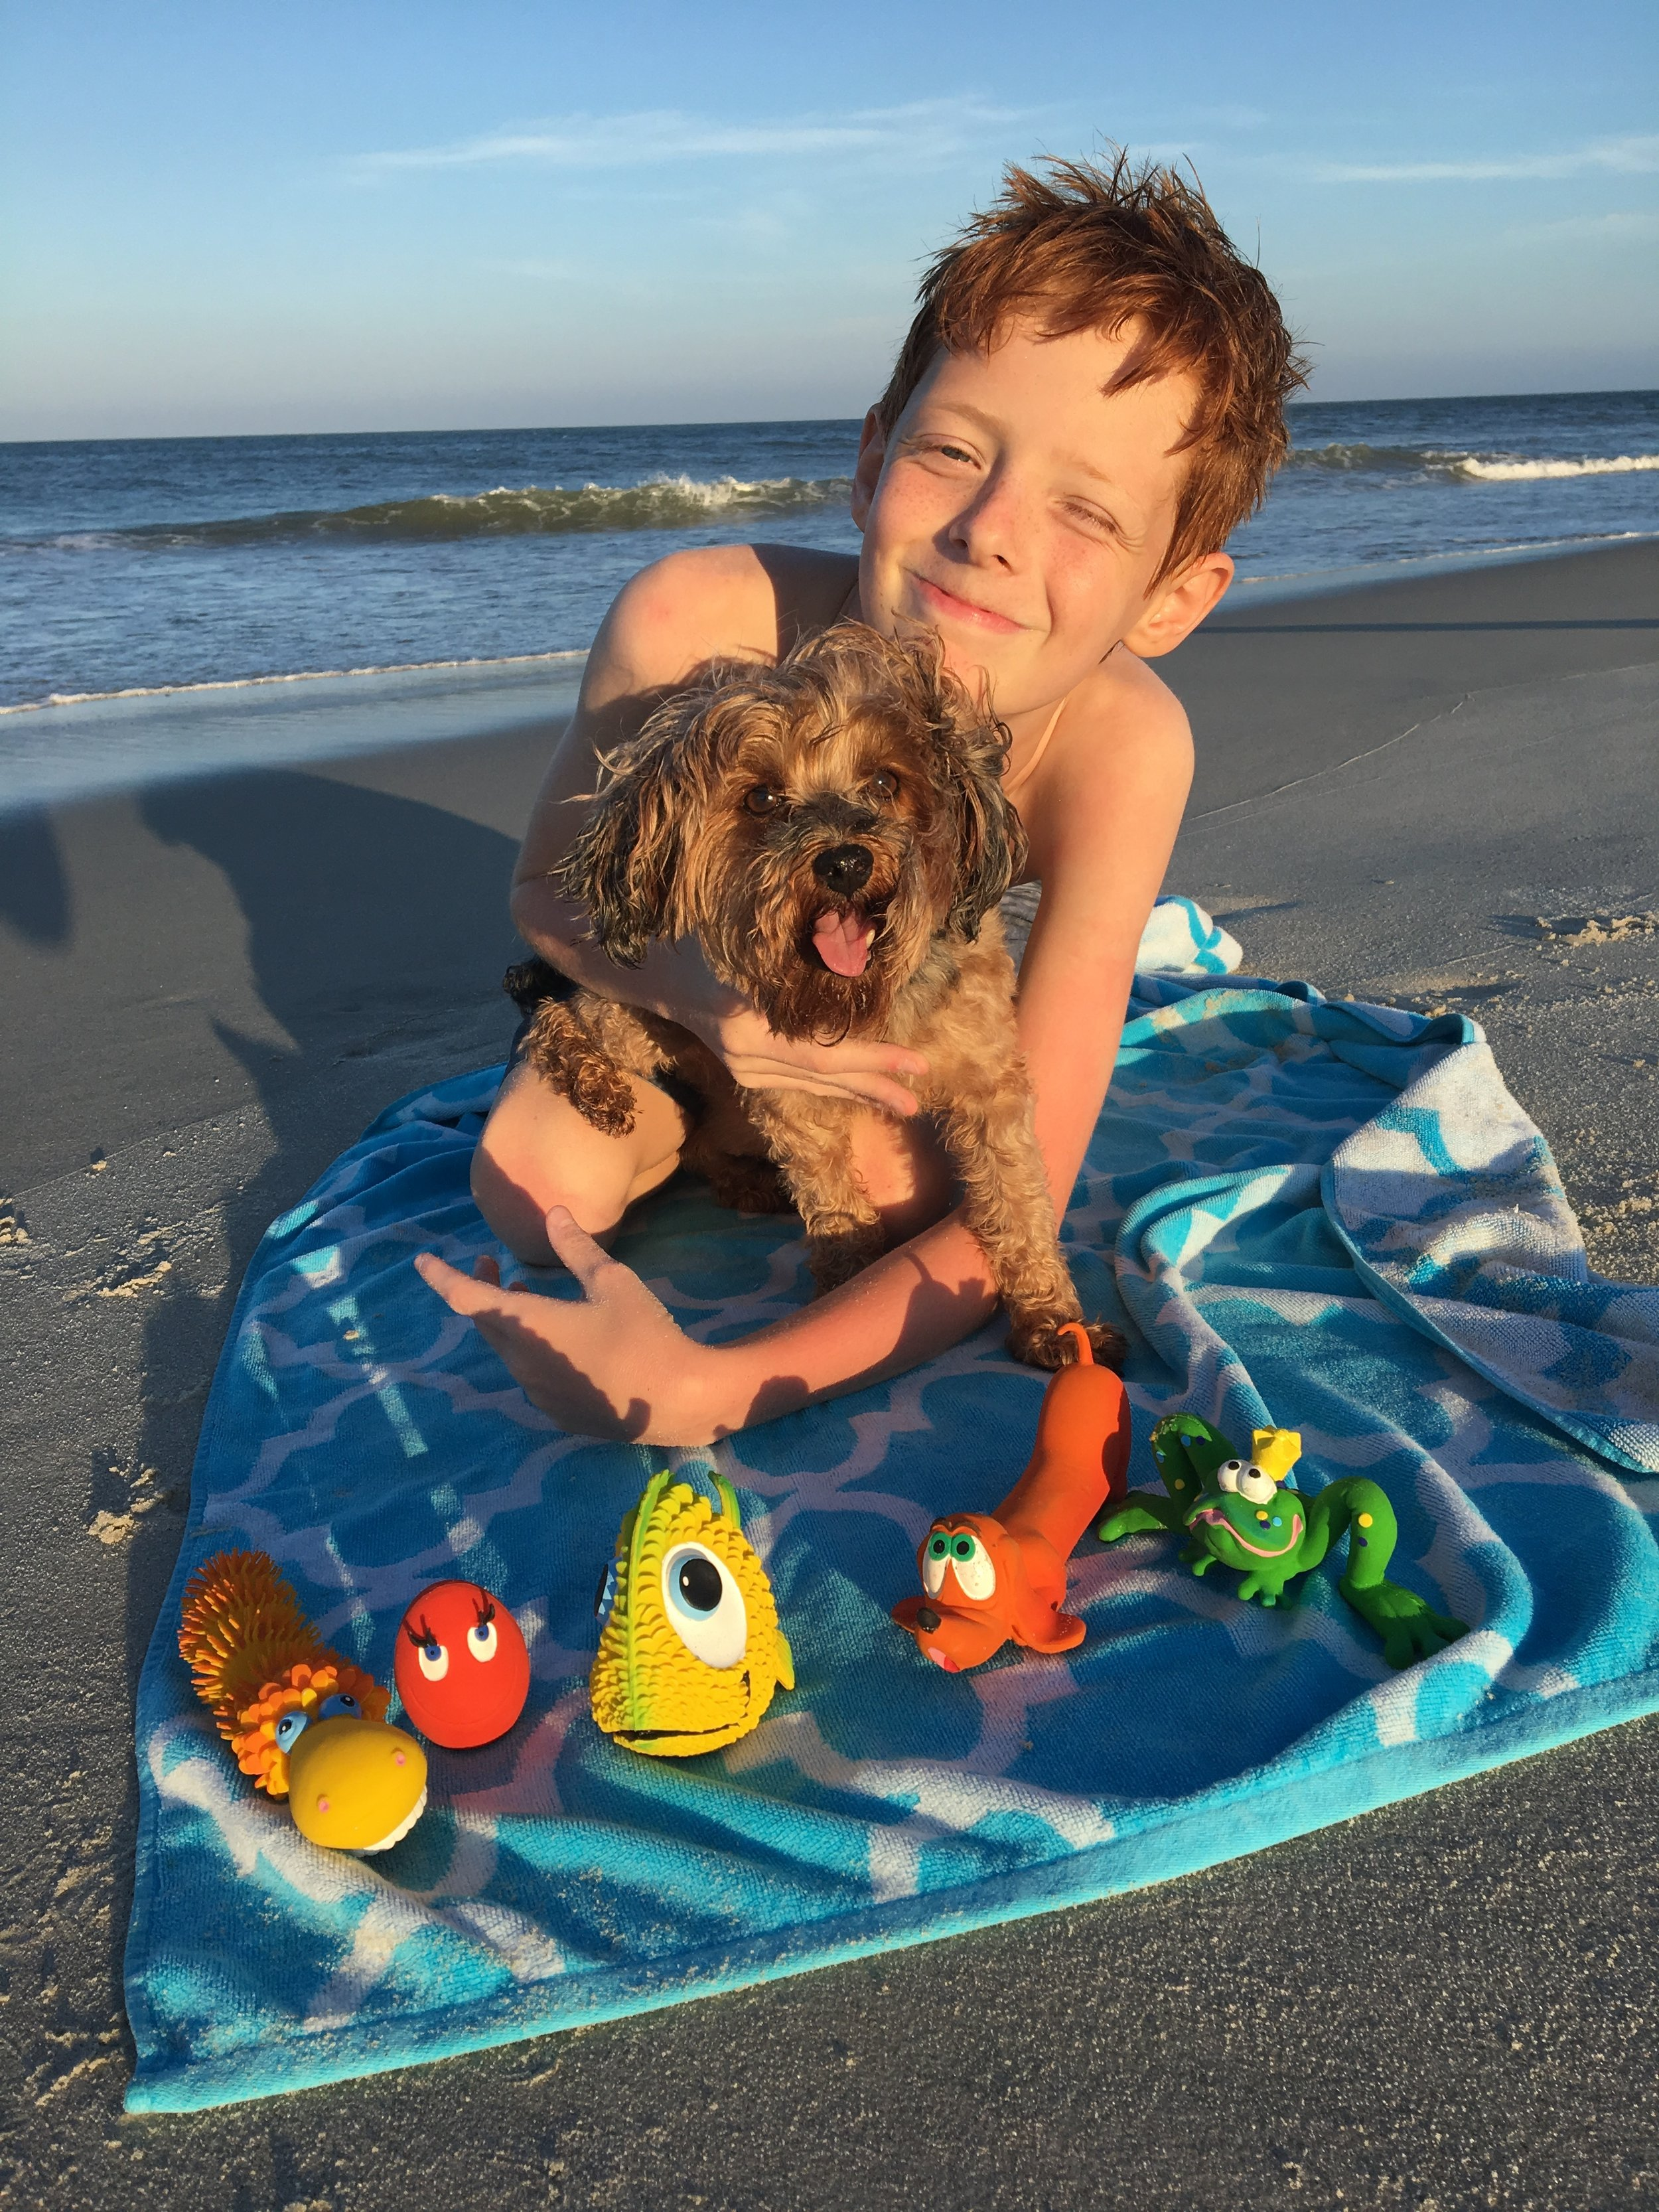 """OUR STORY - My name is Valerie Lecoeur Brockenbrough, and I'm the founder of Lucas b. Natural Dog Toys. I'm also the founder and owner of Zoë b Organic. As an eco-entrepreneur, mom, and dog owner, I'm passionate about offering families safe and healthy choices, including for their dogs. That's why I'm proud to be partnering with Lanco, a family-owned business in Barcelona, Spain, that's been making 100% natural rubber toys for both pets and children since 1952.My husband and I have three great kids, and Lucas b. Natural Dog Toys is named after our 13-year-old son, Lucas (pronounced """"luca""""). Since he was a baby, Lucas has adored dogs of all shapes and sizes. And he's best friends with our Yorkie Poo, """"Rambo."""" (You'll find photos of our scruffy, 7-pound mascot throughout our site.)"""